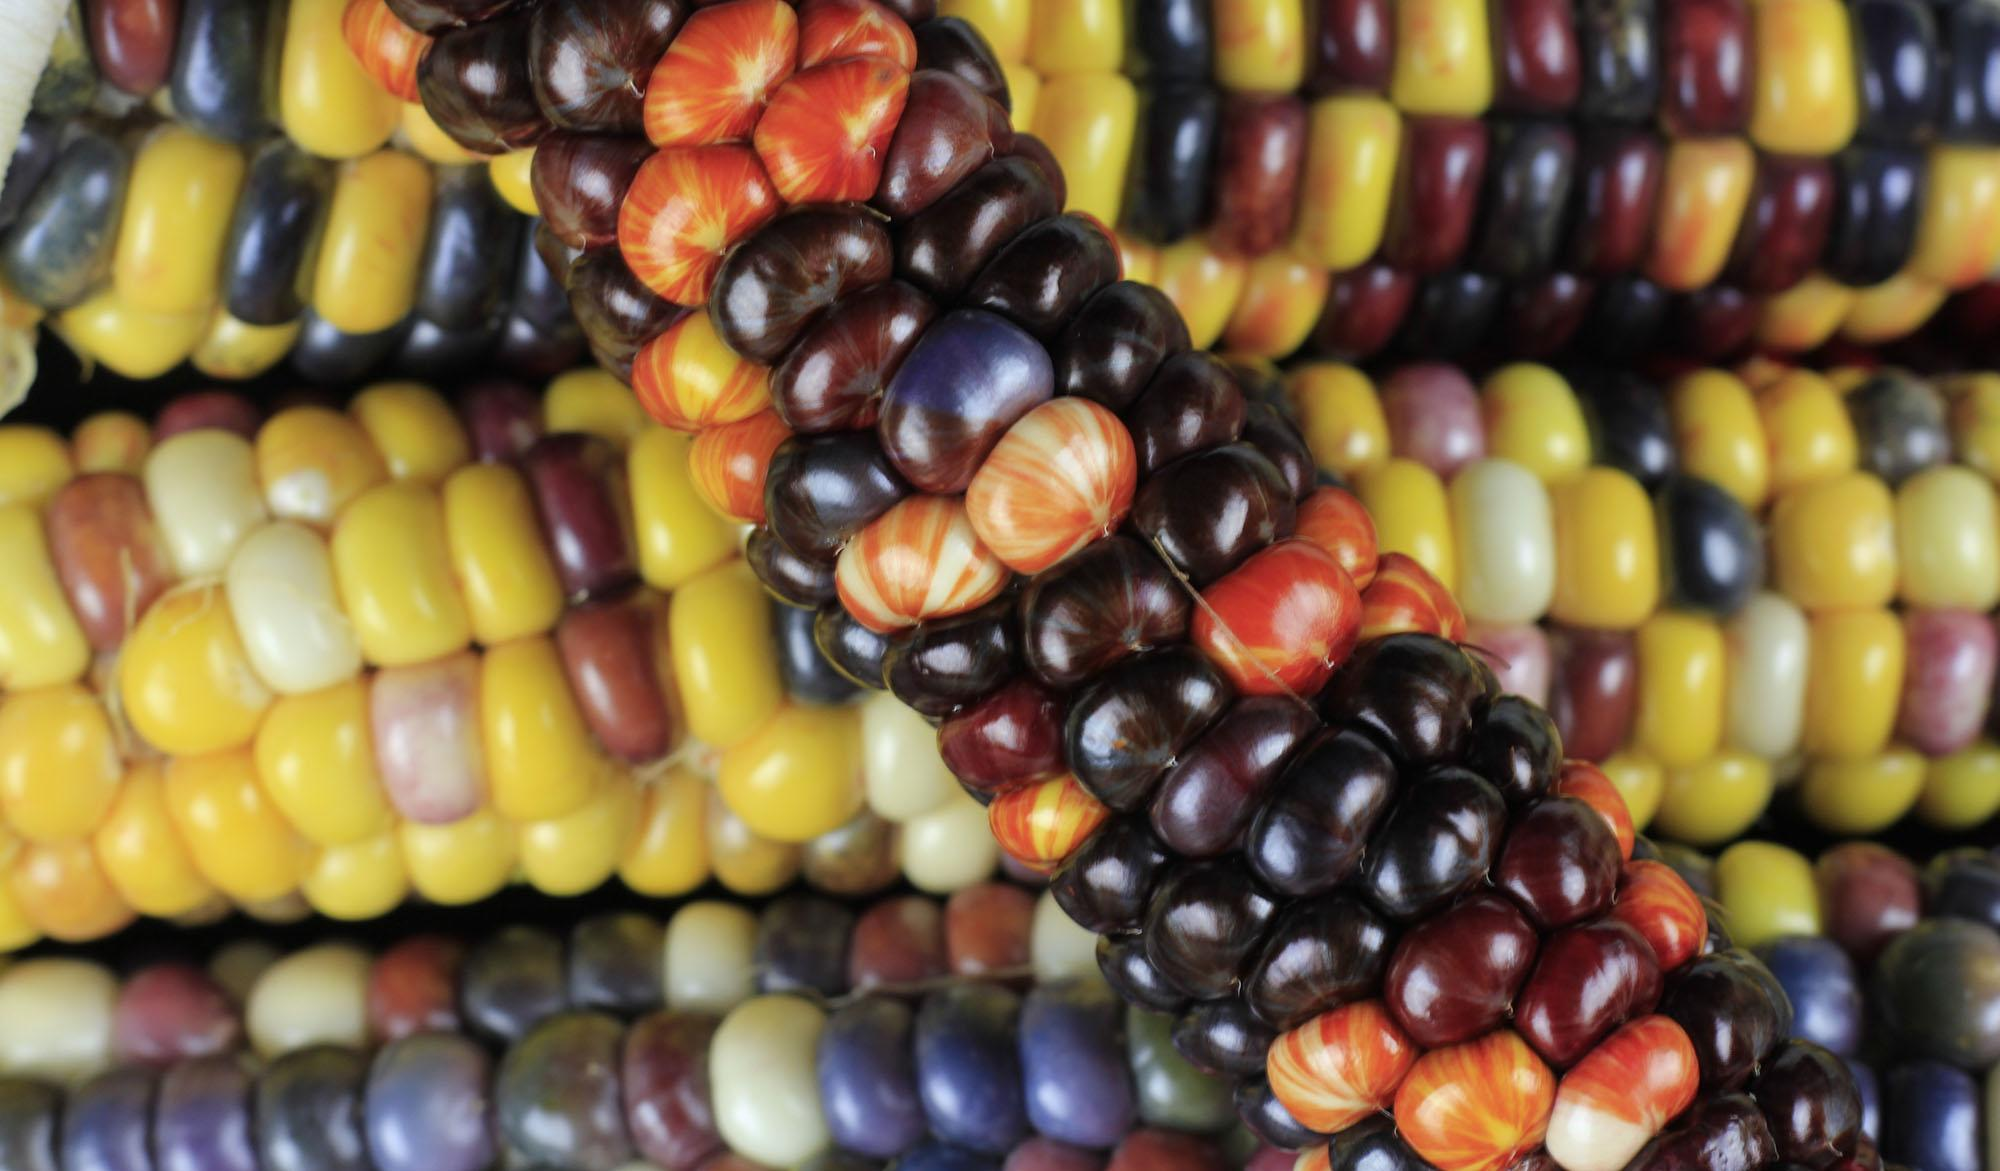 Corn kernels showing an unstable phenotype (stripes and spots) caused by jumping genes interfering with a pigment gene.